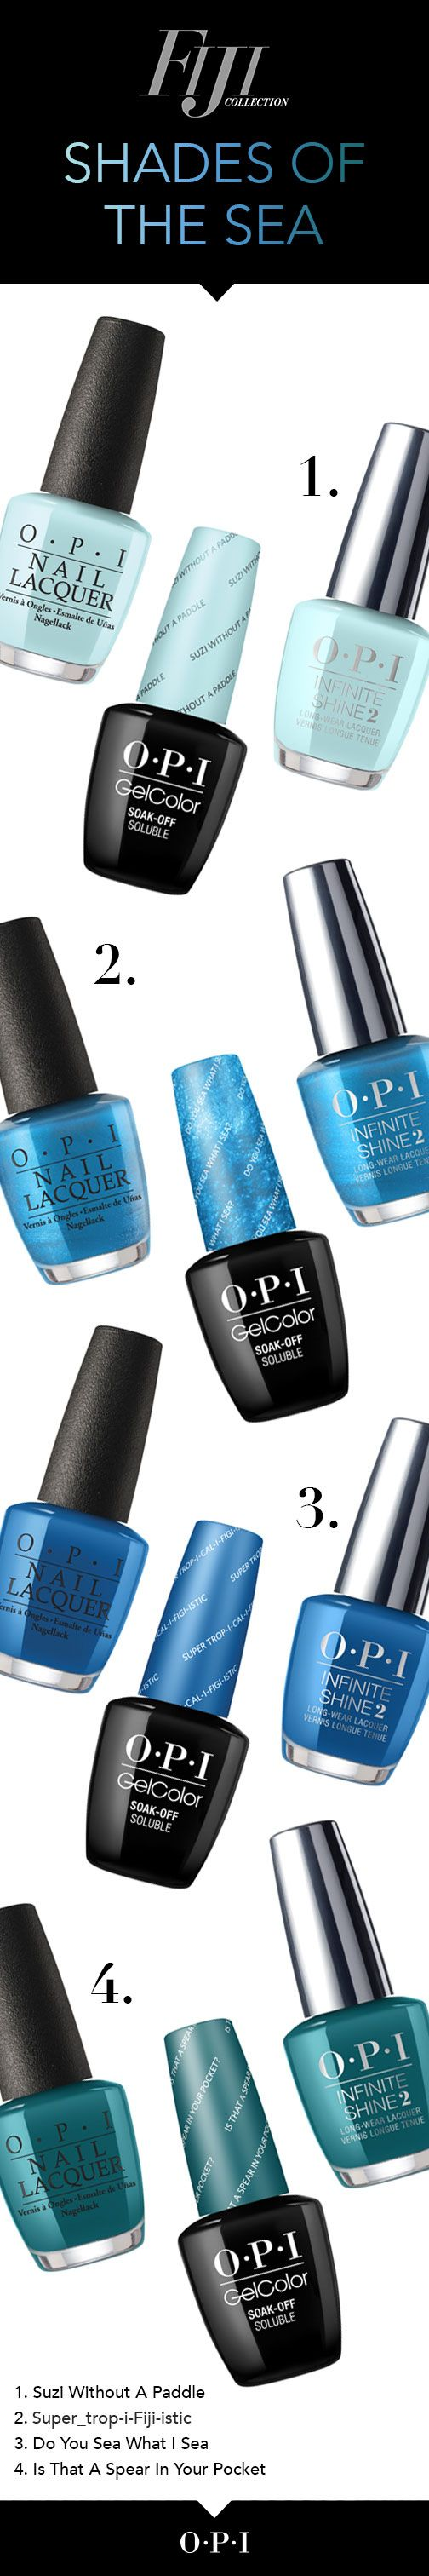 Introducing the Shades of the Sea from OPI's new Fiji collection. Cool blues inspired by ever-changing colors of the endless oceans, OPI presents 12 new shades for Spring. All 12 Fiji collection shades are available in GelColor, Infinite Shine and Nail Lacquer formulas. Find paradise with #OPIFiji.